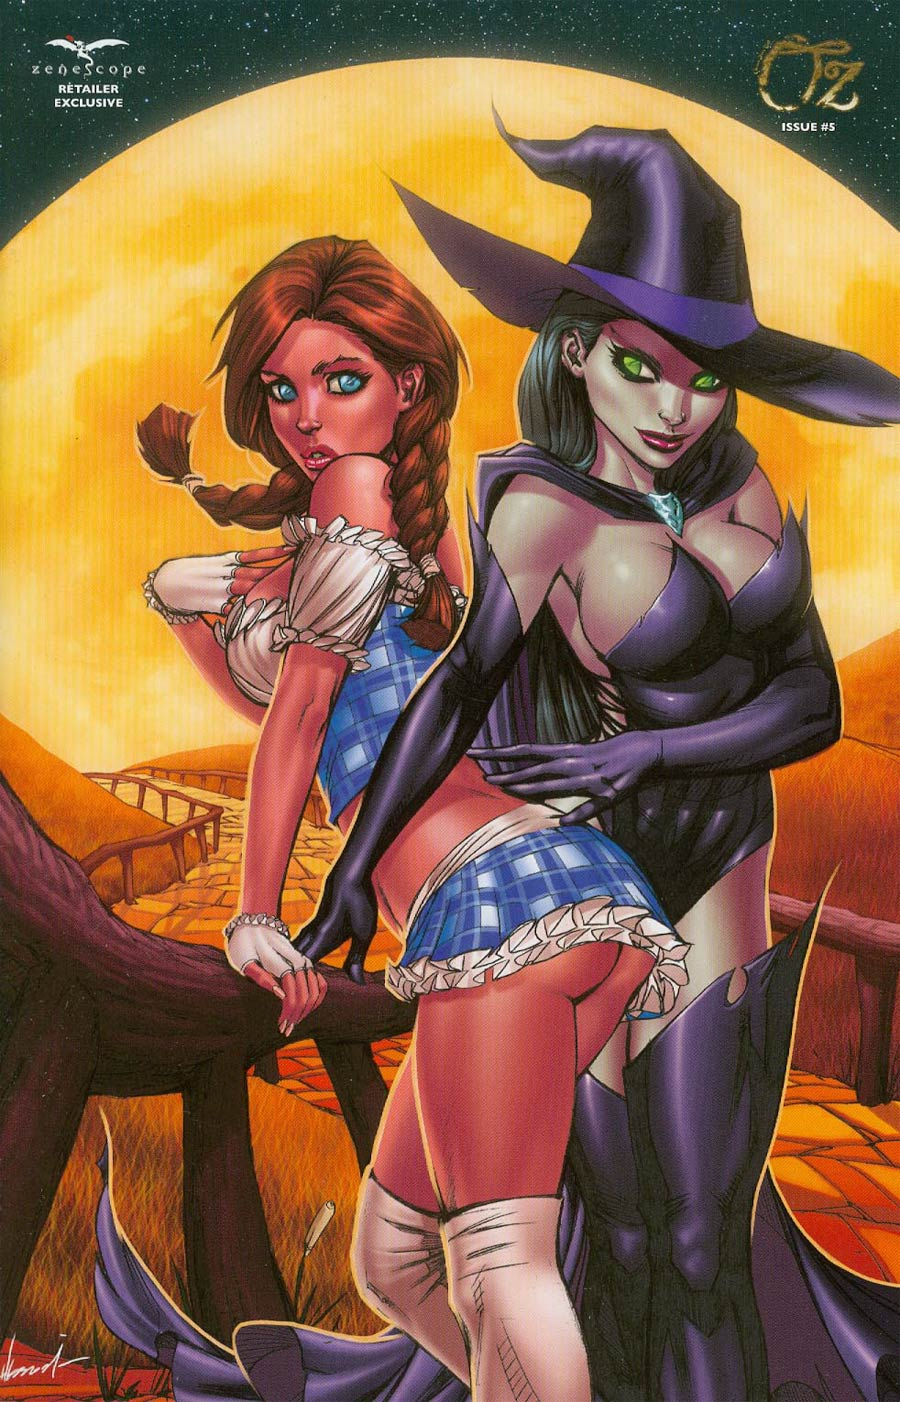 wizard oz of Star wars female characters nude